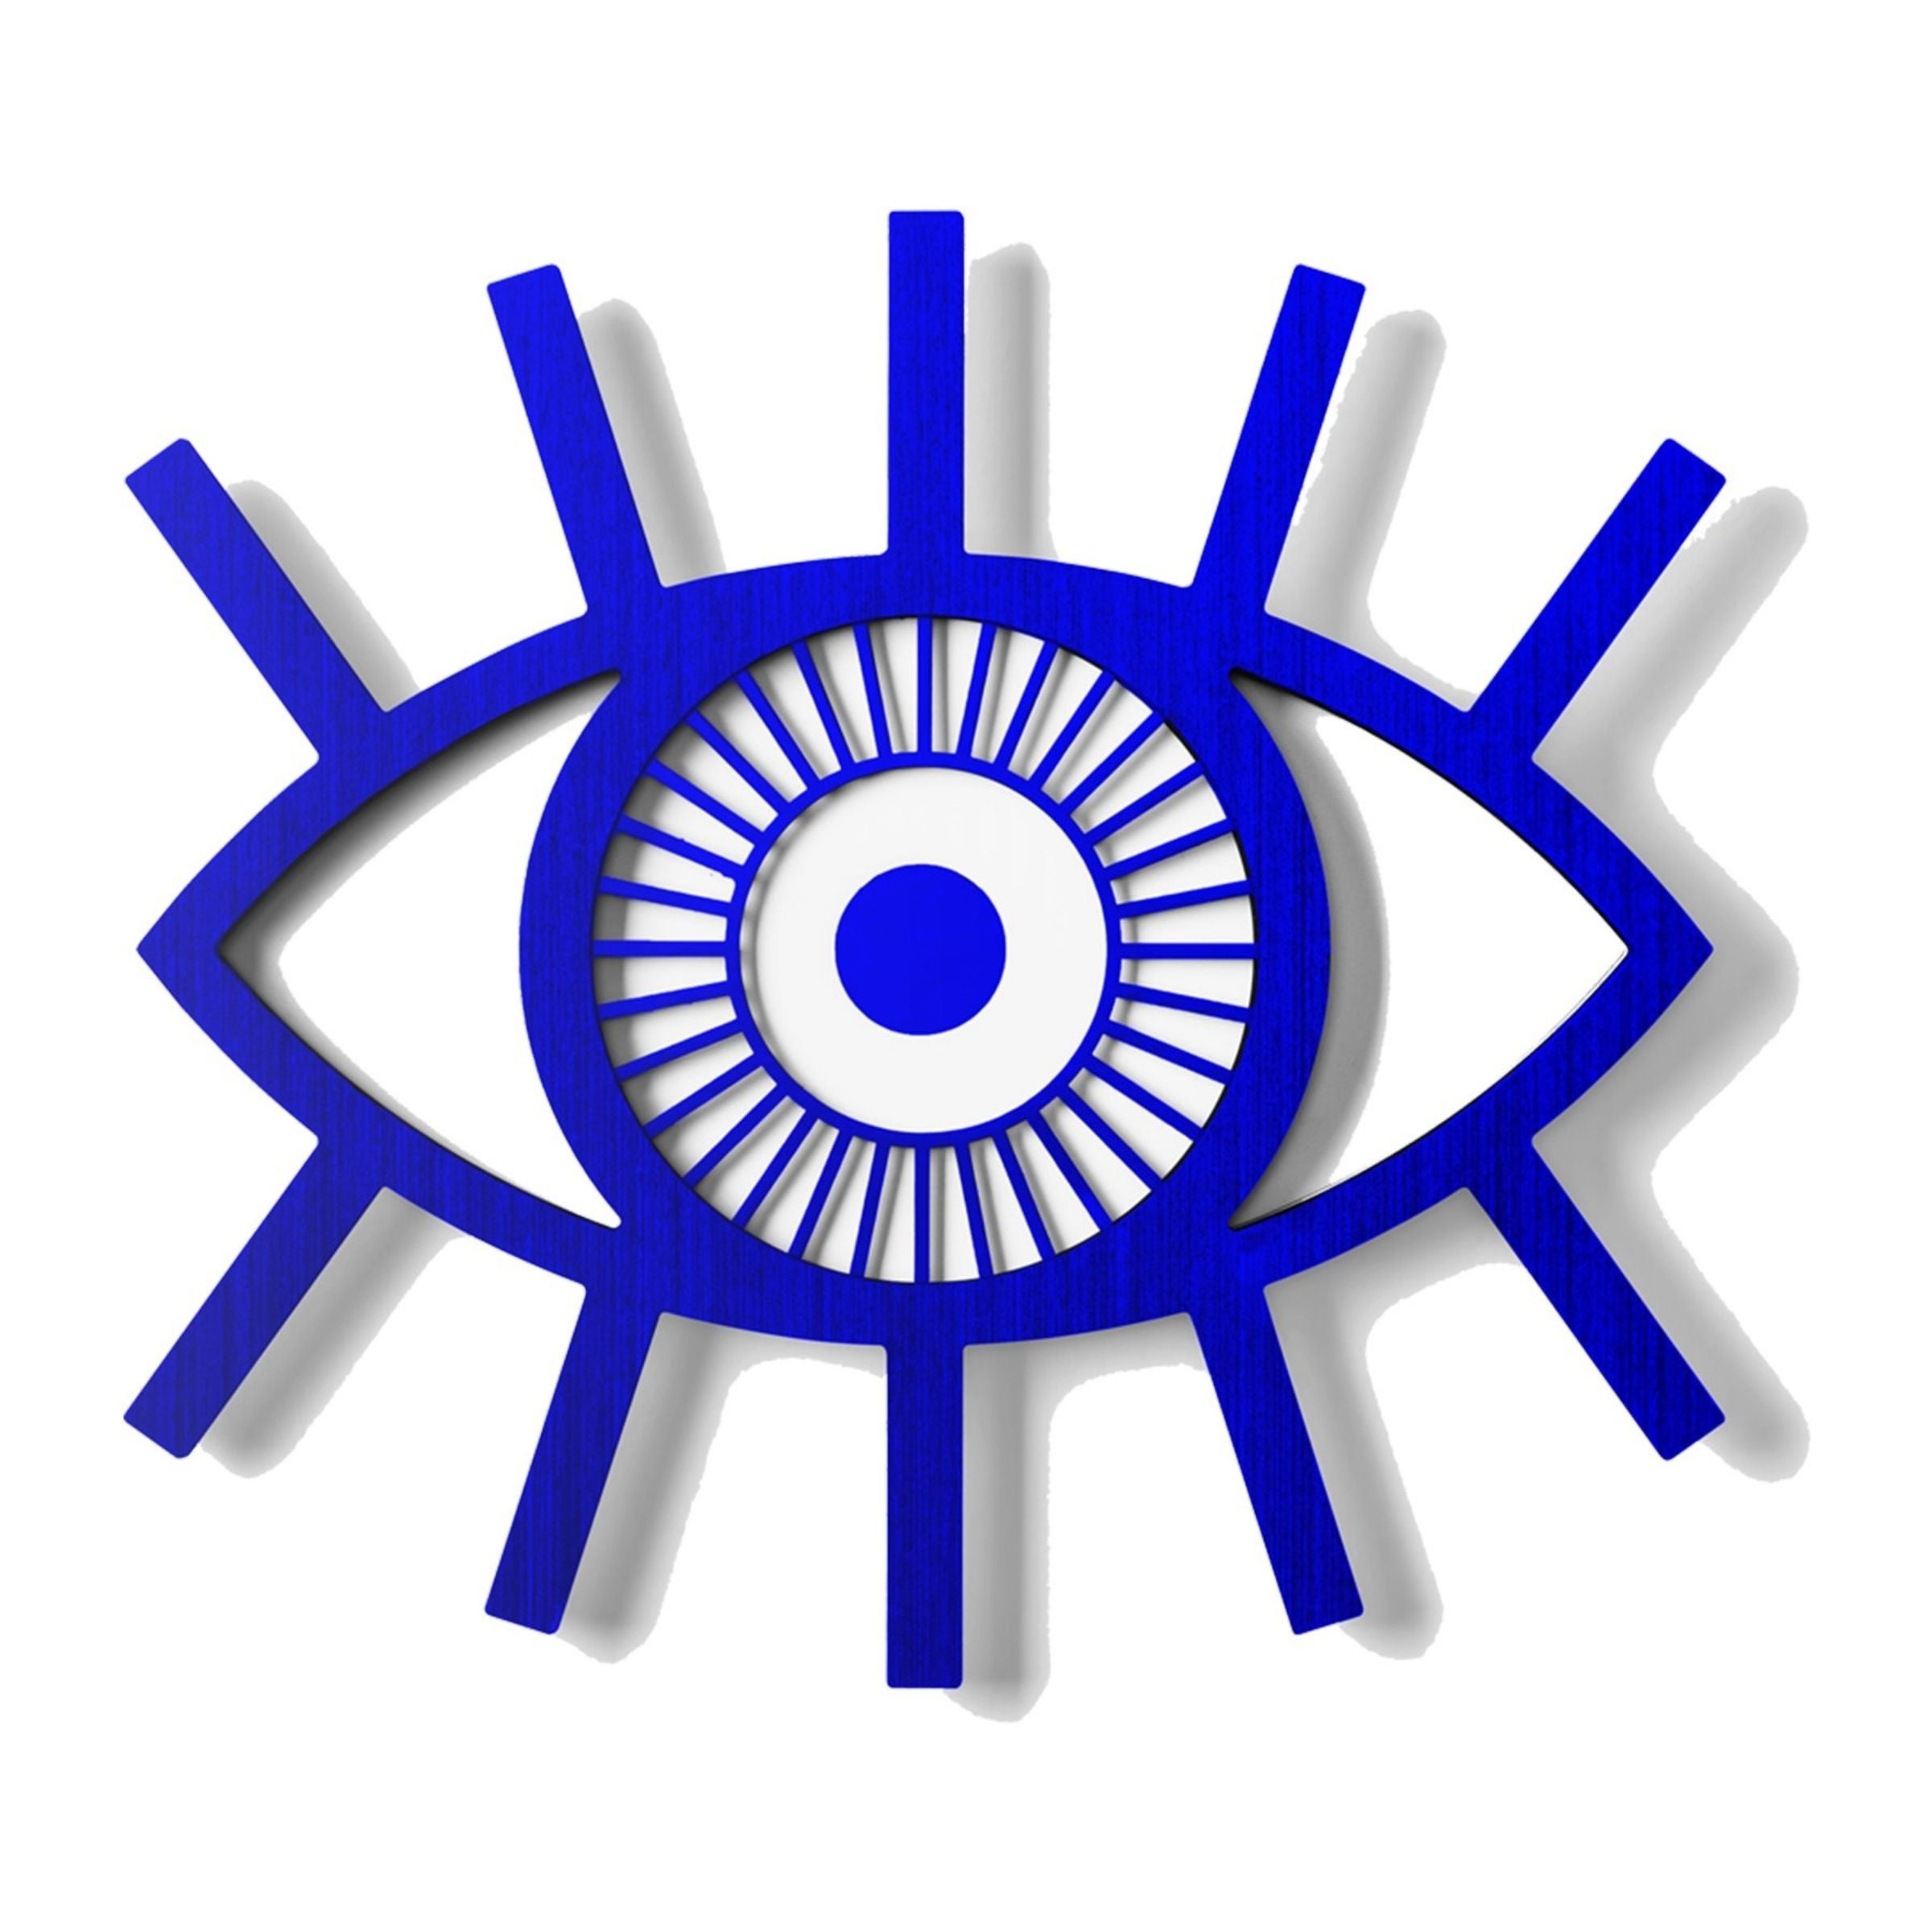 Evil Eye Wall Hanging Ideas to Beautify Your Room in 2021-2022